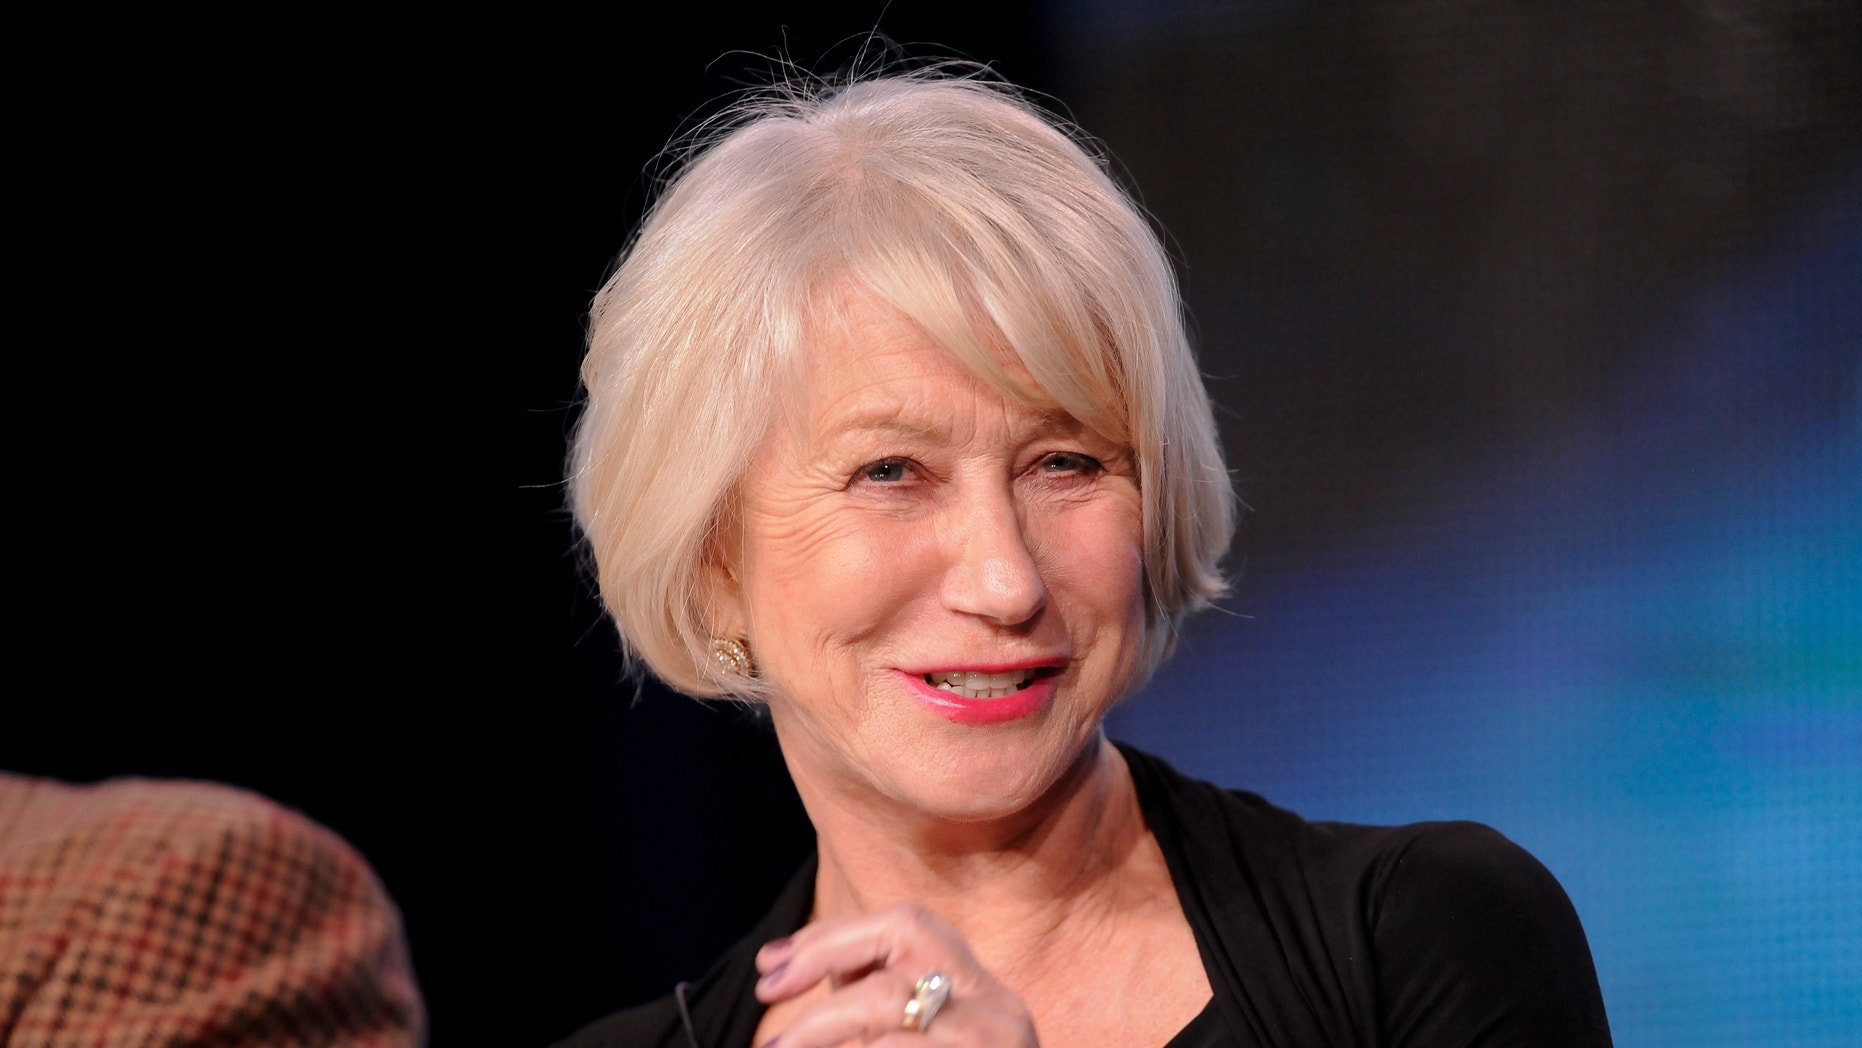 """British actress Helen Mirren takes part in a panel discussion of HBO's """"Phil Spector"""" during the 2013 Winter Press Tour for the Television Critics Association in Pasadena, California January 4, 2013."""